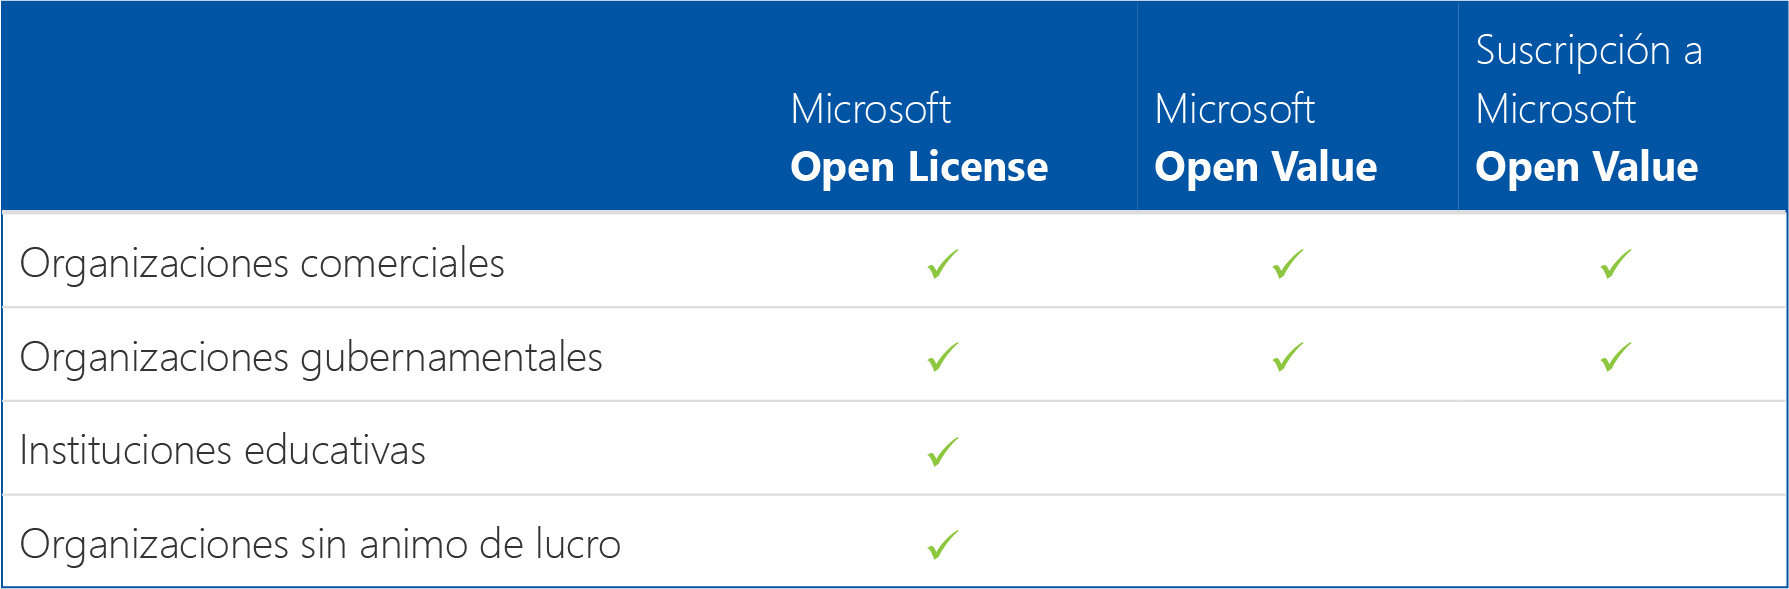 Microsoft Office 365 Open Licence